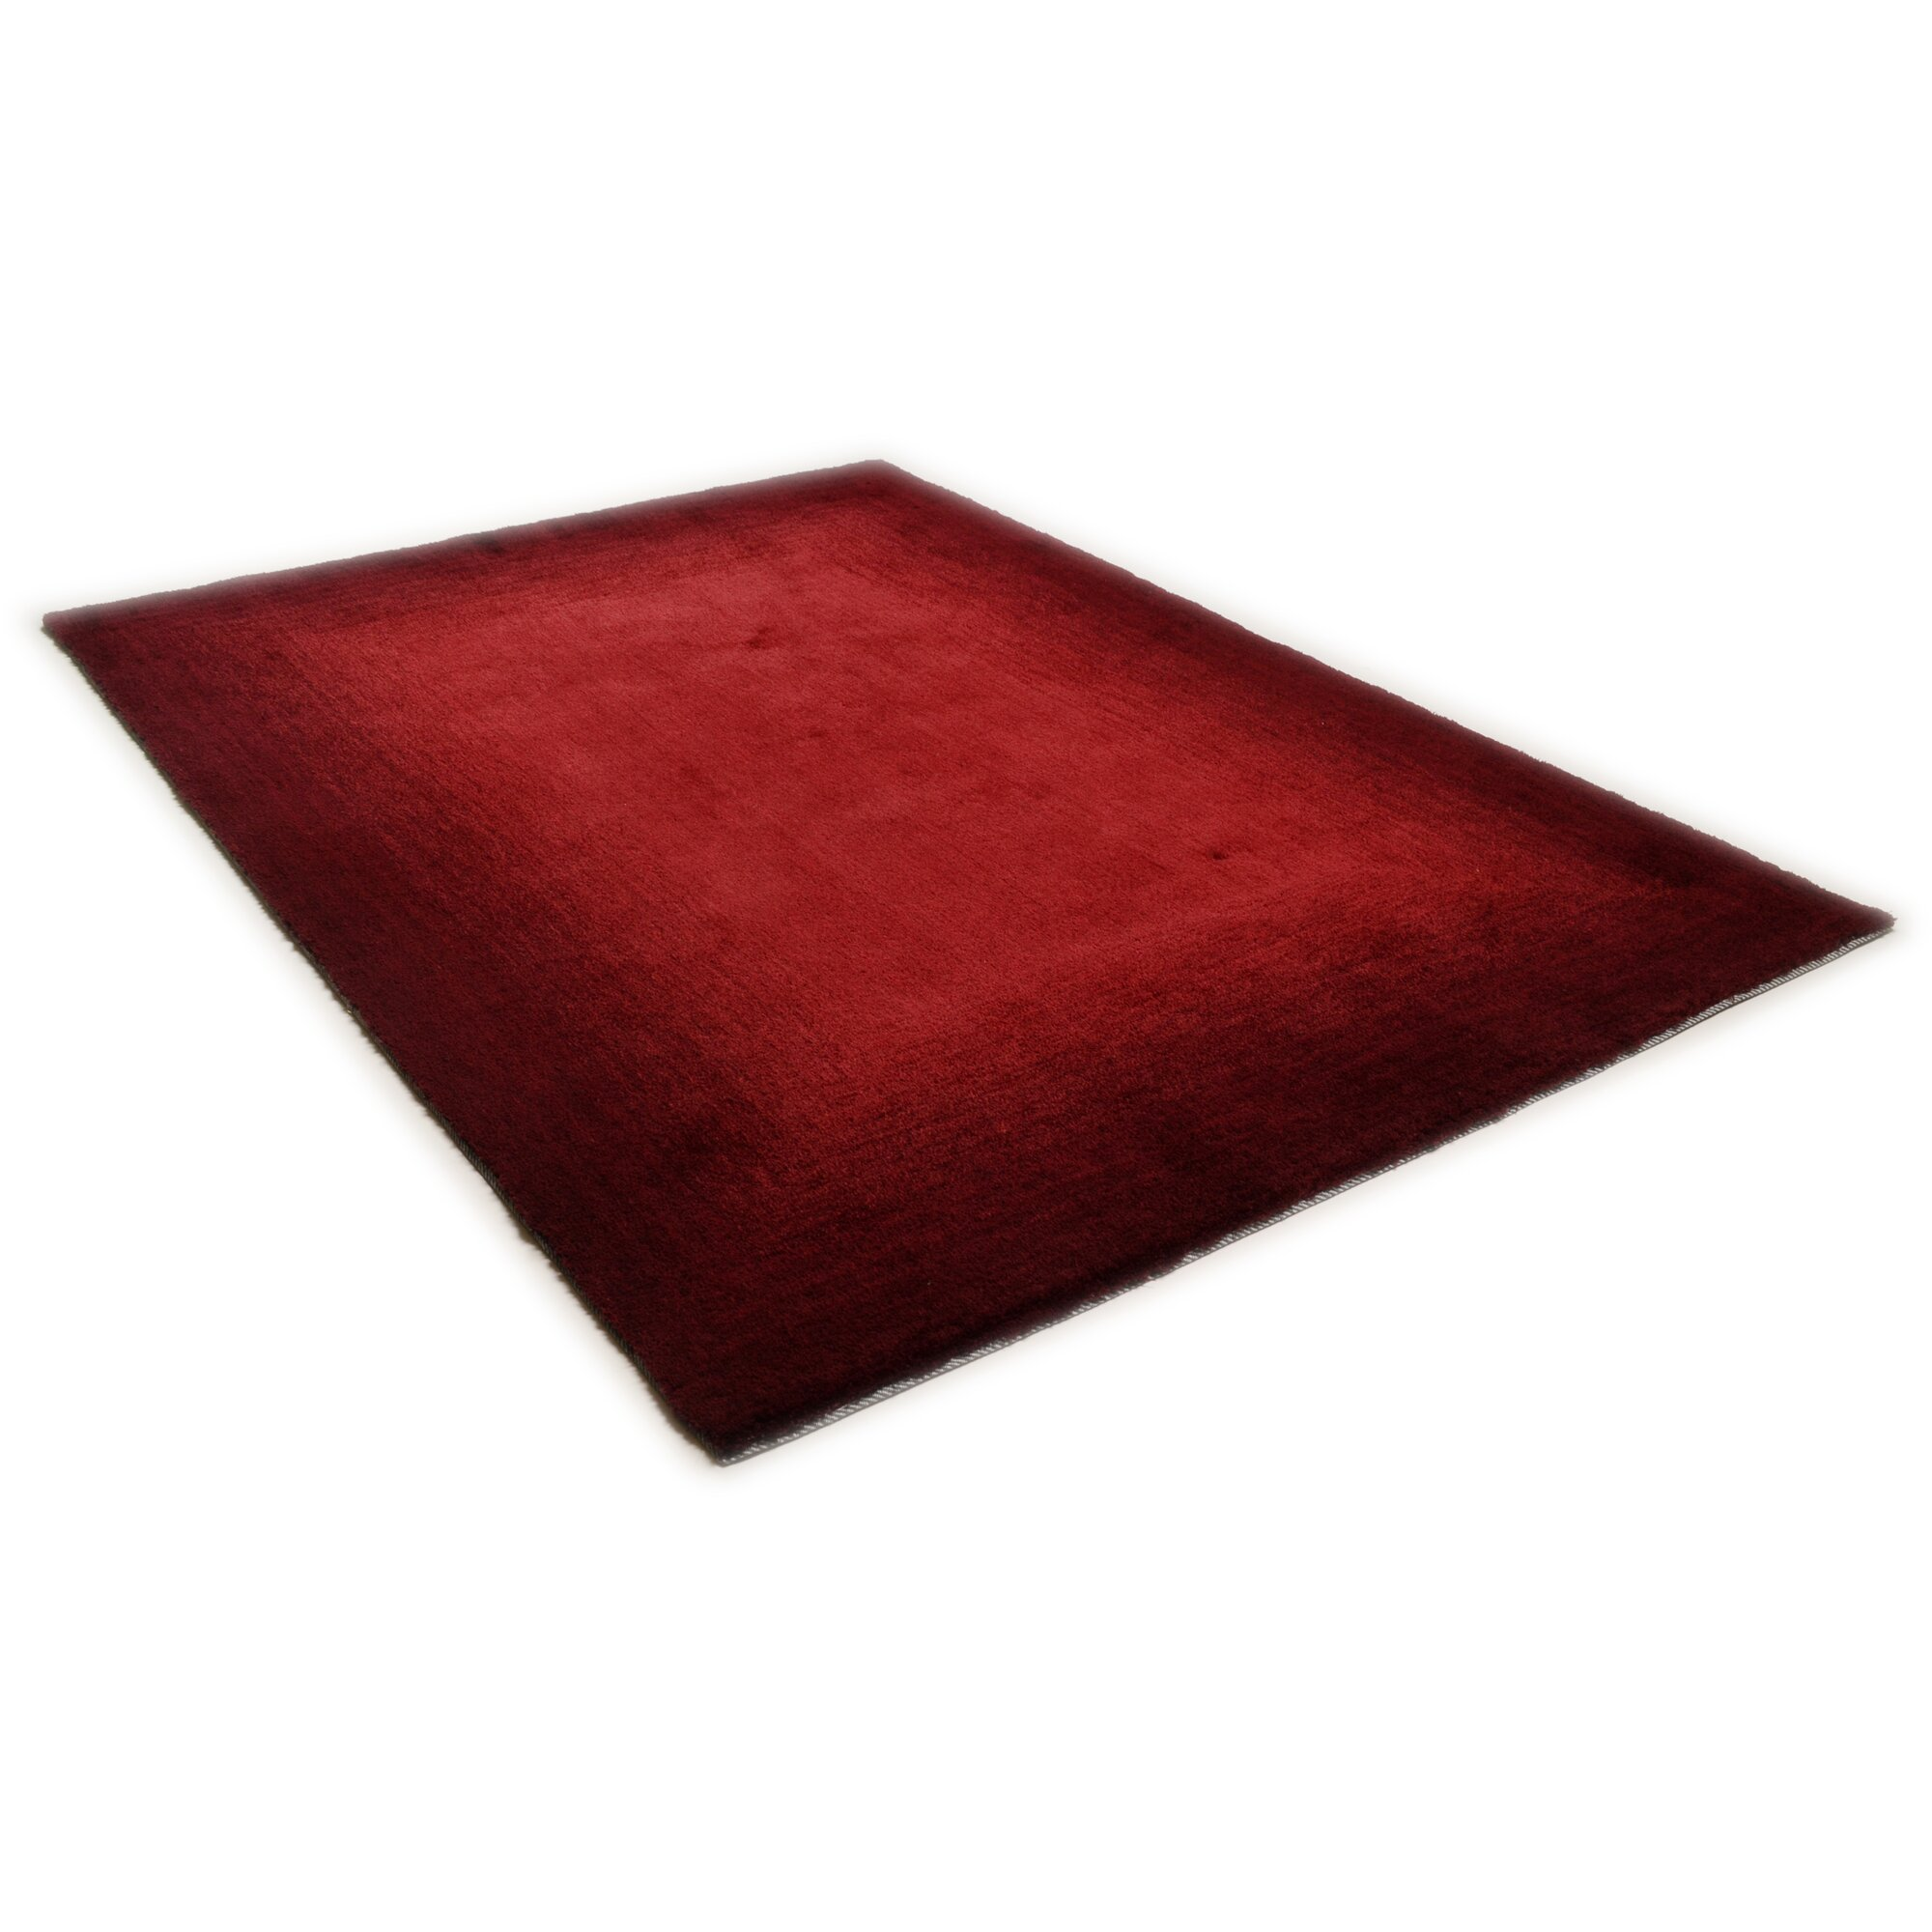 Theko Hula Hand Woven Red Rug amp Reviews Wayfaircouk : HulaHand WovenRedRug from www.wayfair.co.uk size 2000 x 2000 jpeg 242kB